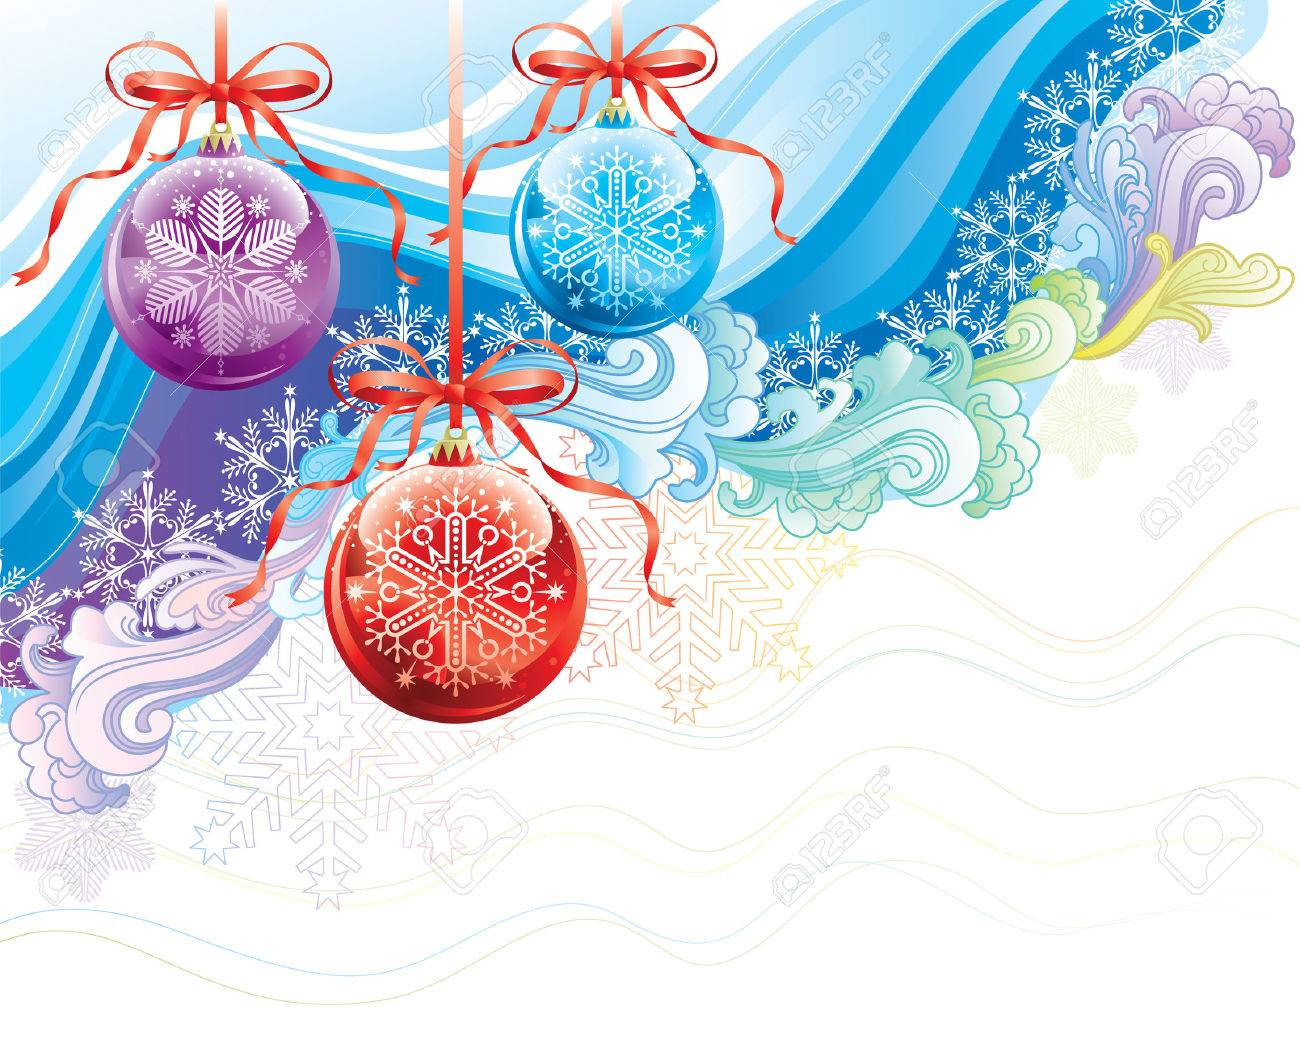 Beautiful Christmas Ornaments beautiful christmas ornaments background, vector illustration